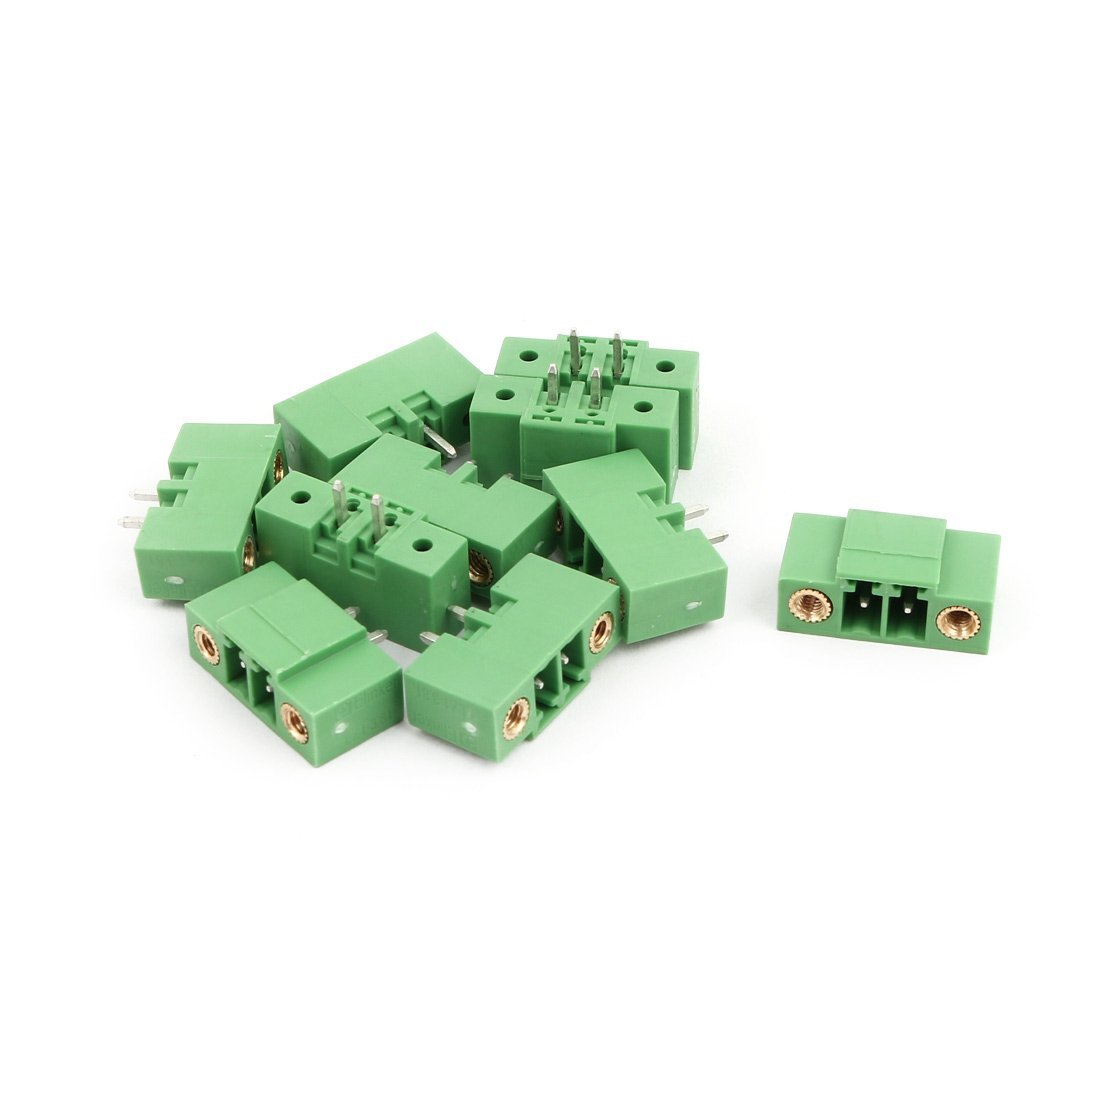 uxcell 10Pcs AC 300V 8A 3.81mm Pitch 2P Terminals Block Wire Connection for PCB Mounting